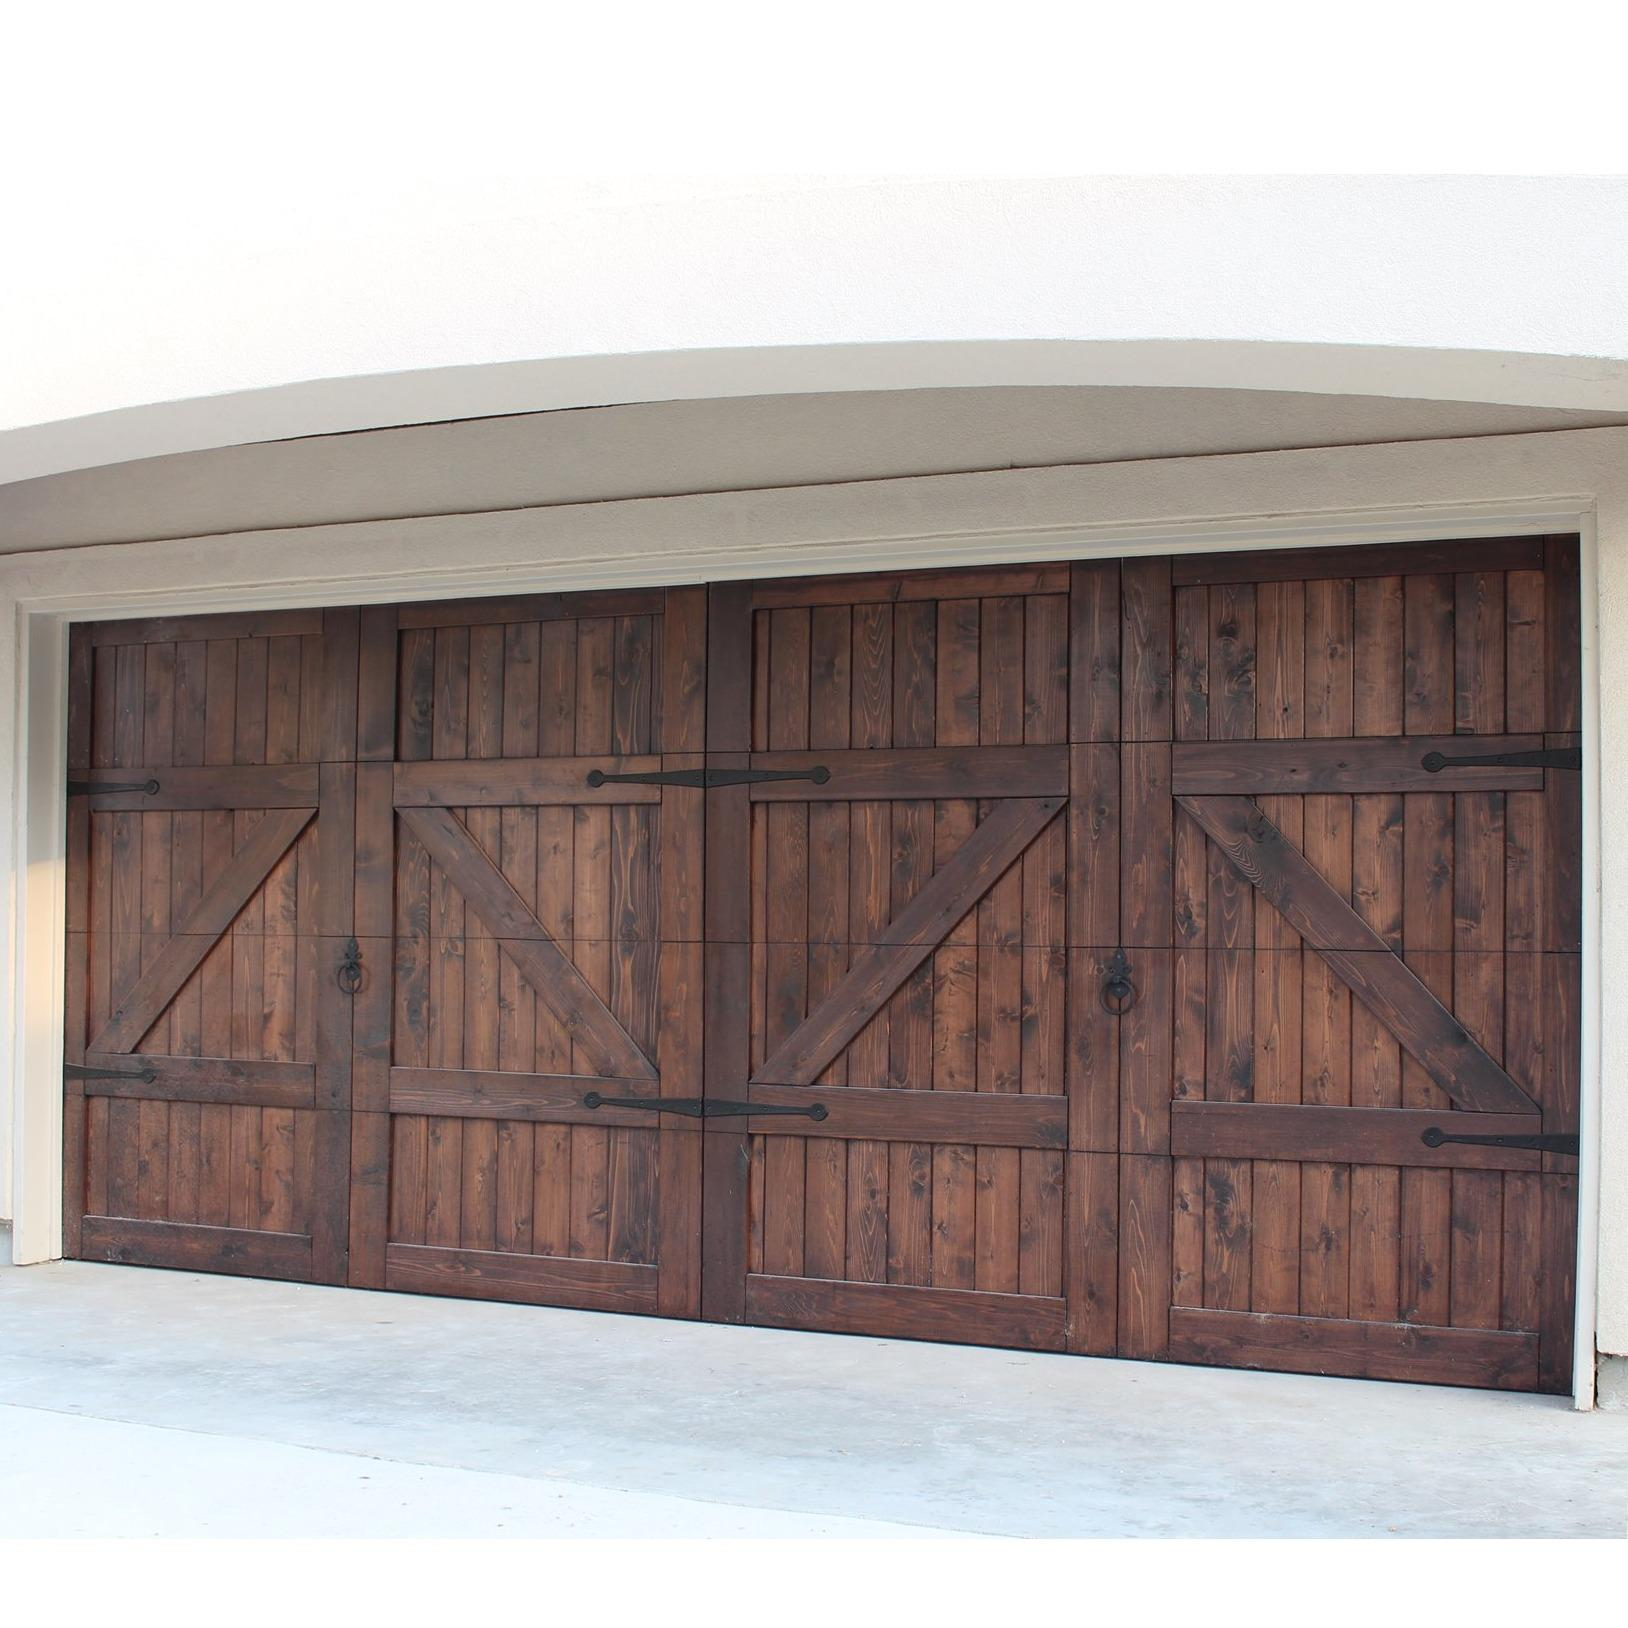 1628 #7A5A51 Overhead Garage Doors 2411 Karbach St Suite #3 Houston TX Garage  image Overhead Doors Houston 36031628